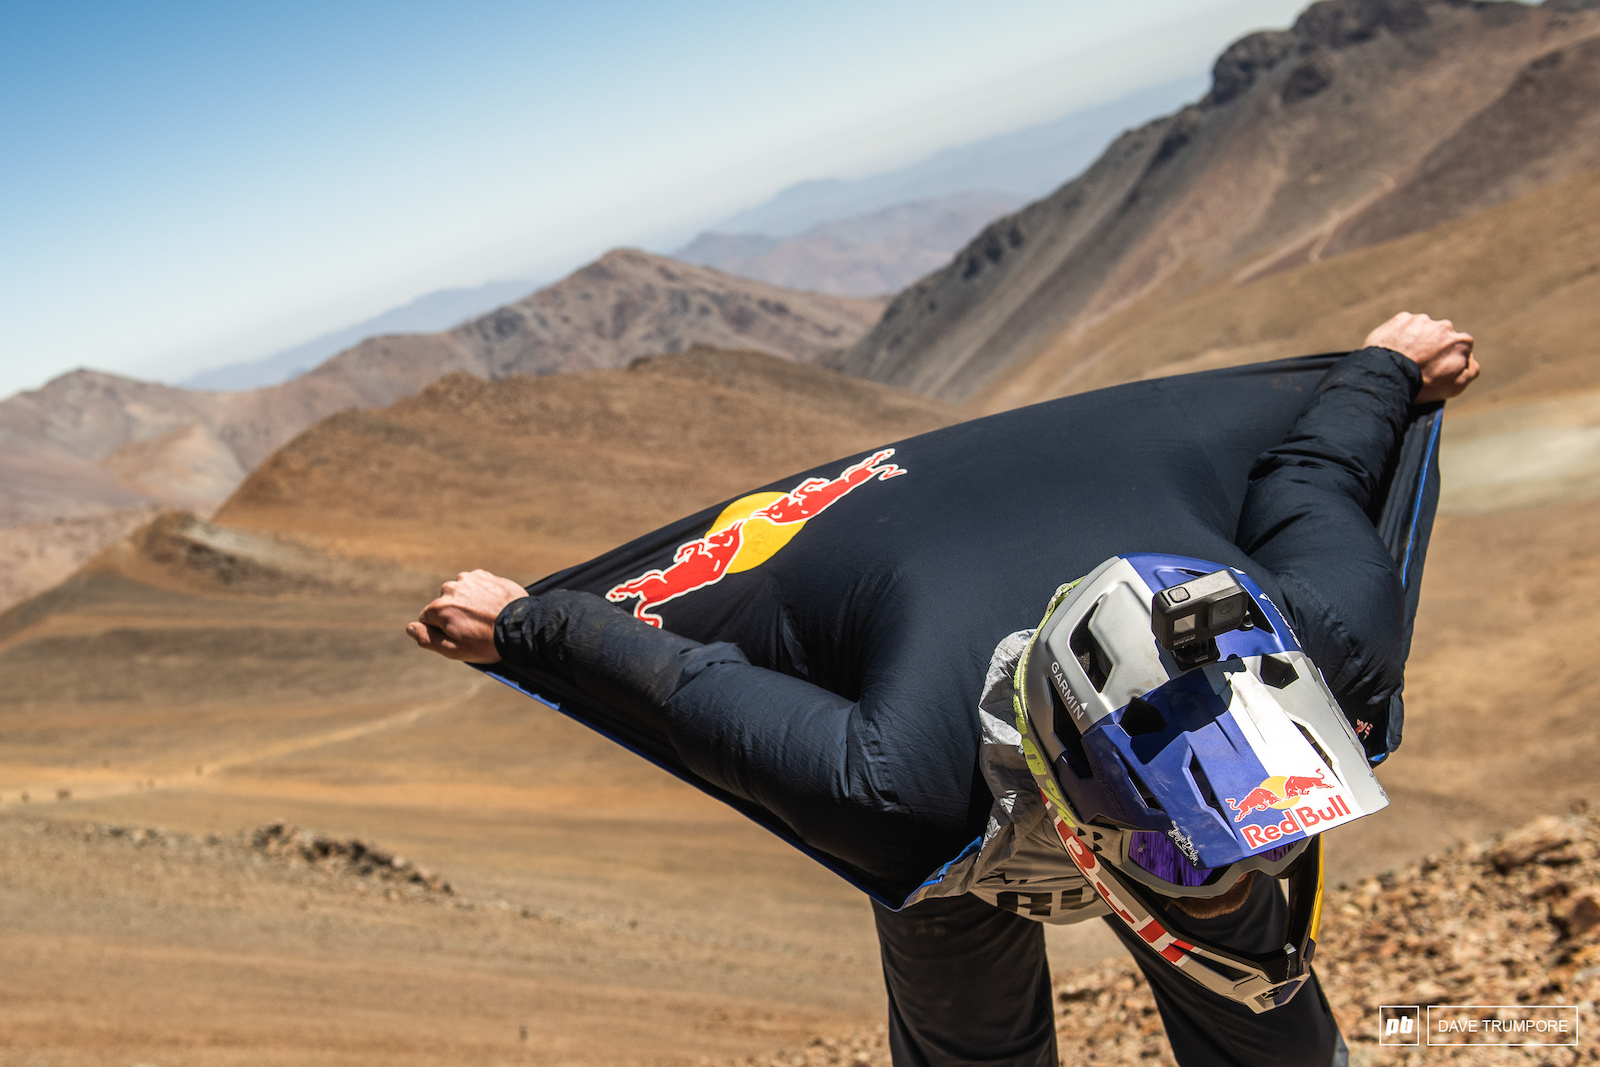 Greg Callaghan skipped the long hike a bike and just flew in on his Red Bull wing suit